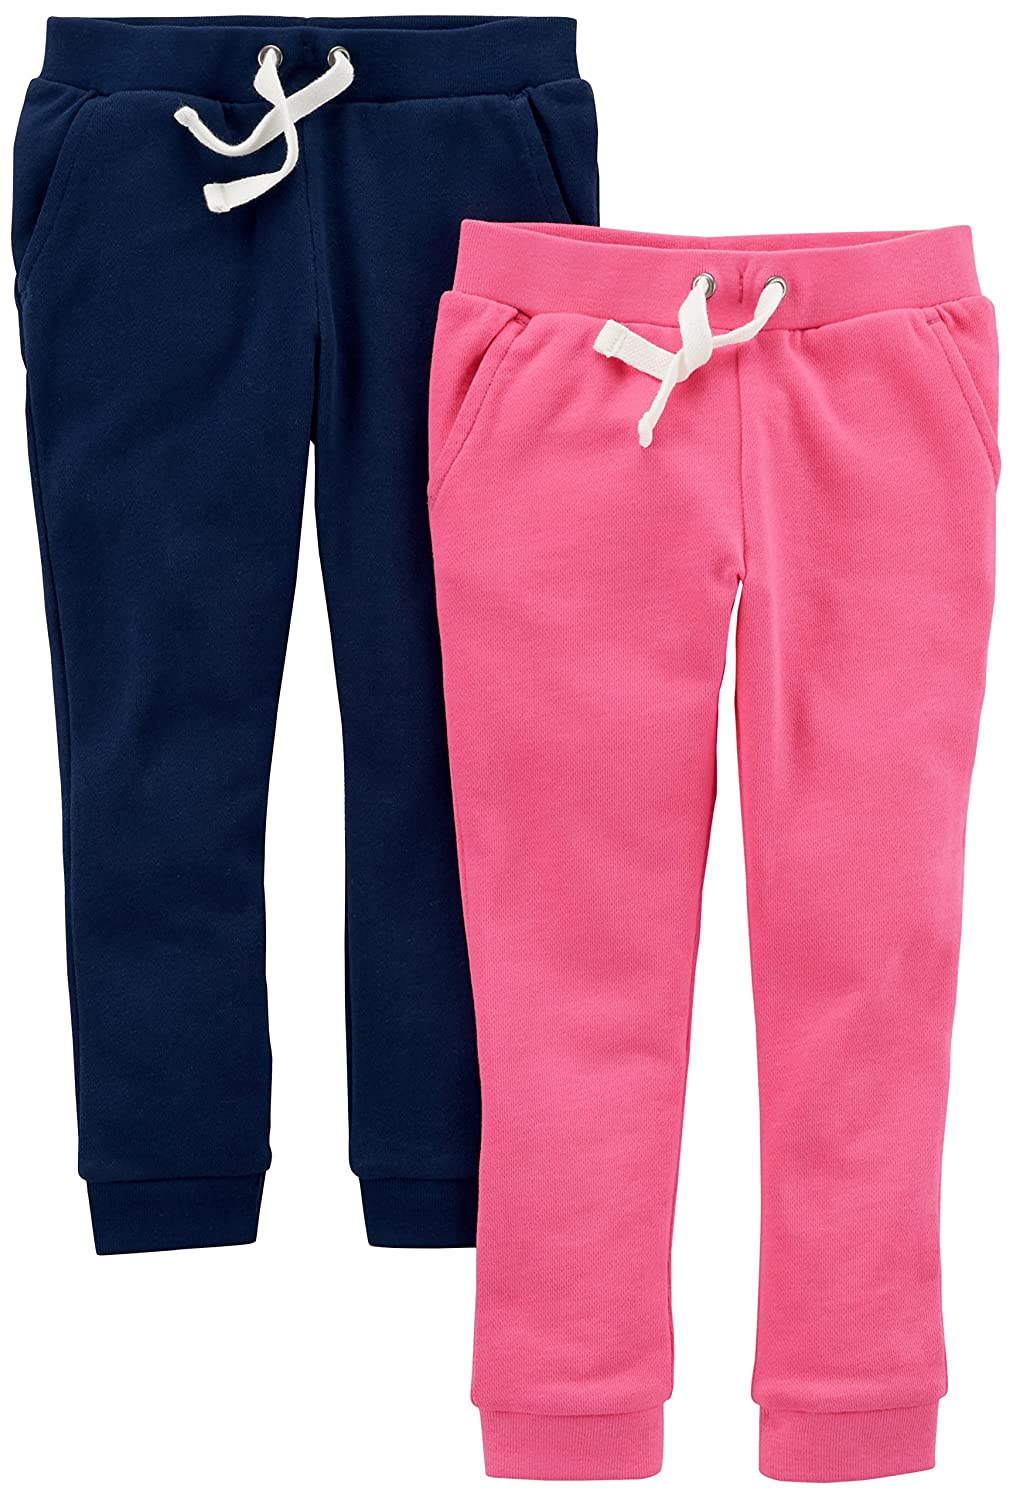 Carter's Girls' Big 2-Pack French Terry Jogger, Carters KBC GPW2PKPNT